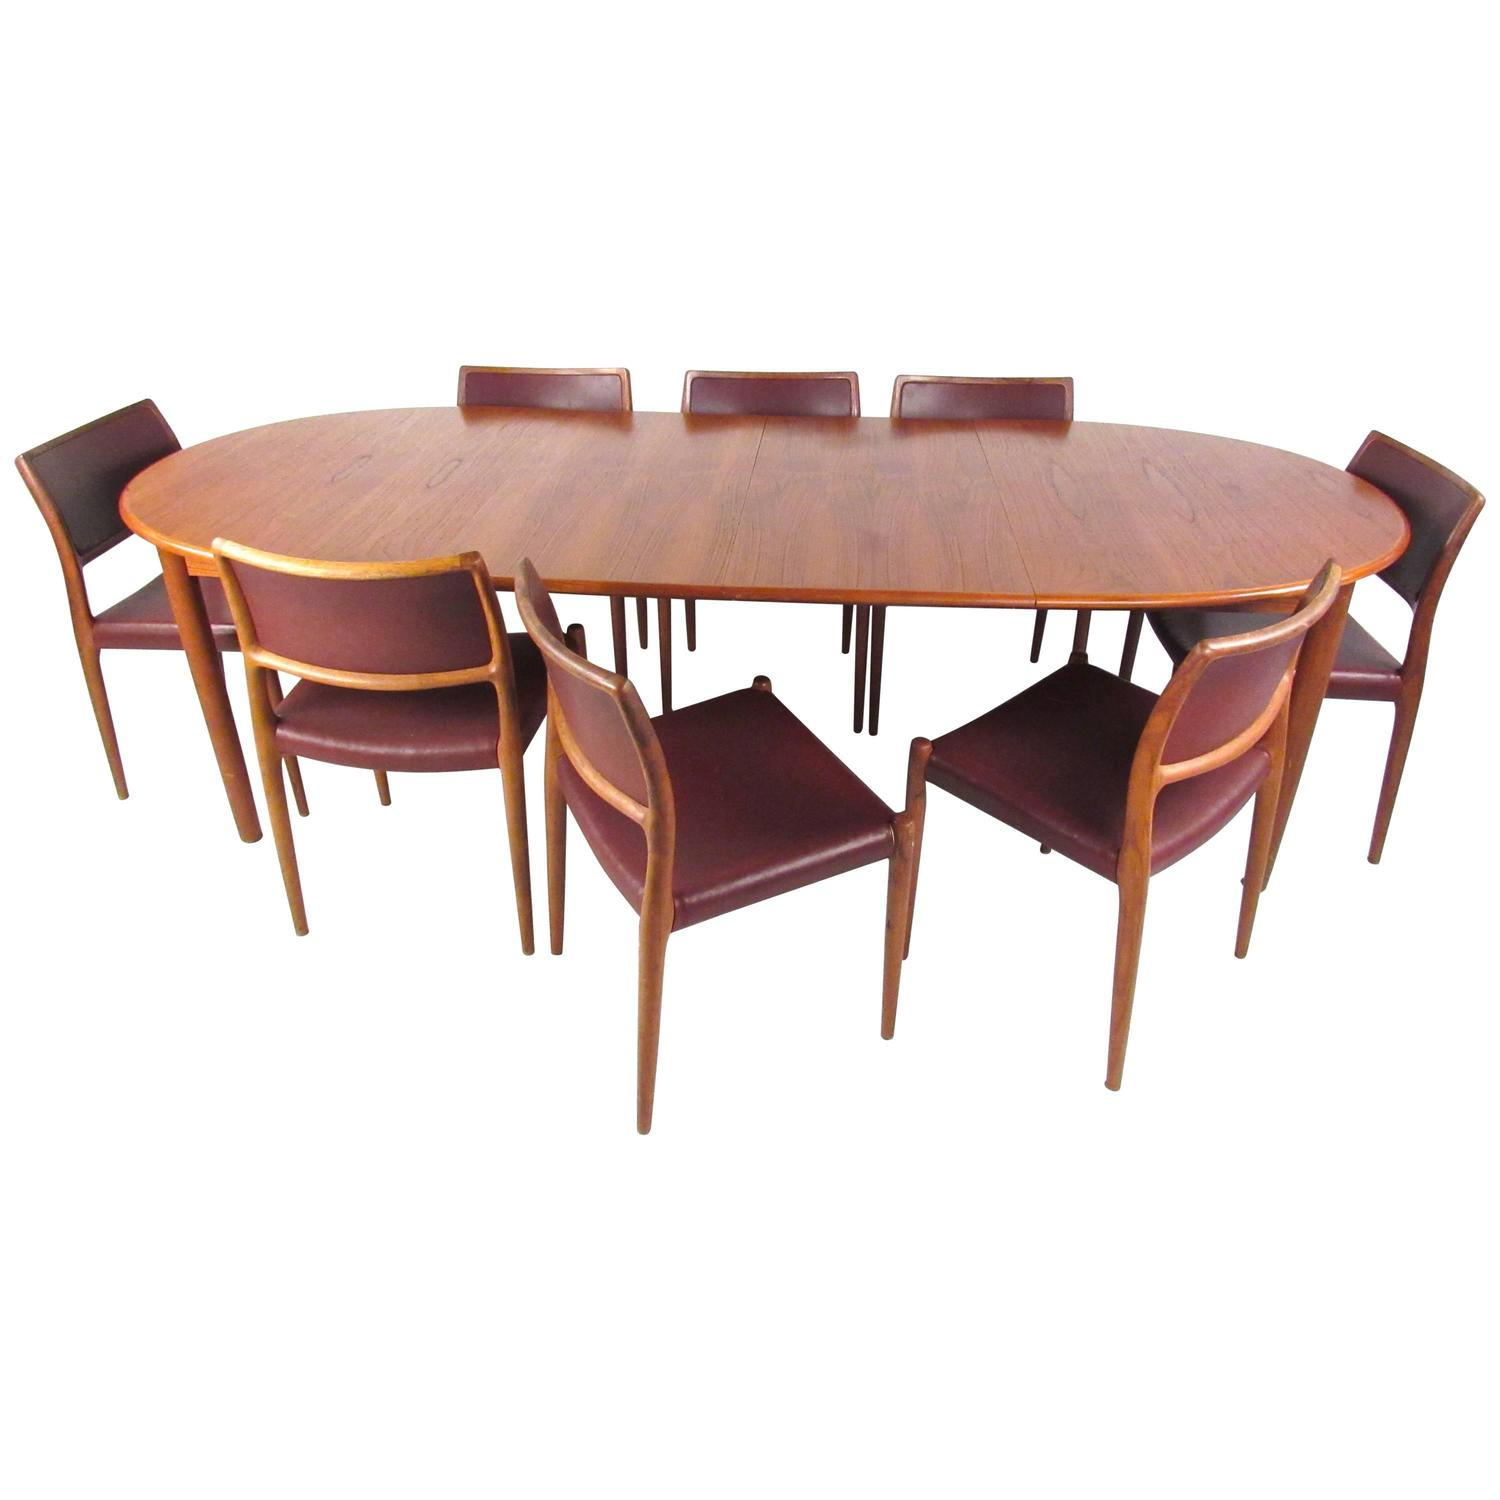 Danish Modern Dining Chairs For Sale Mid Century Modern Danish Teak Dining Set With Model 80 N O Moller Dining Chair